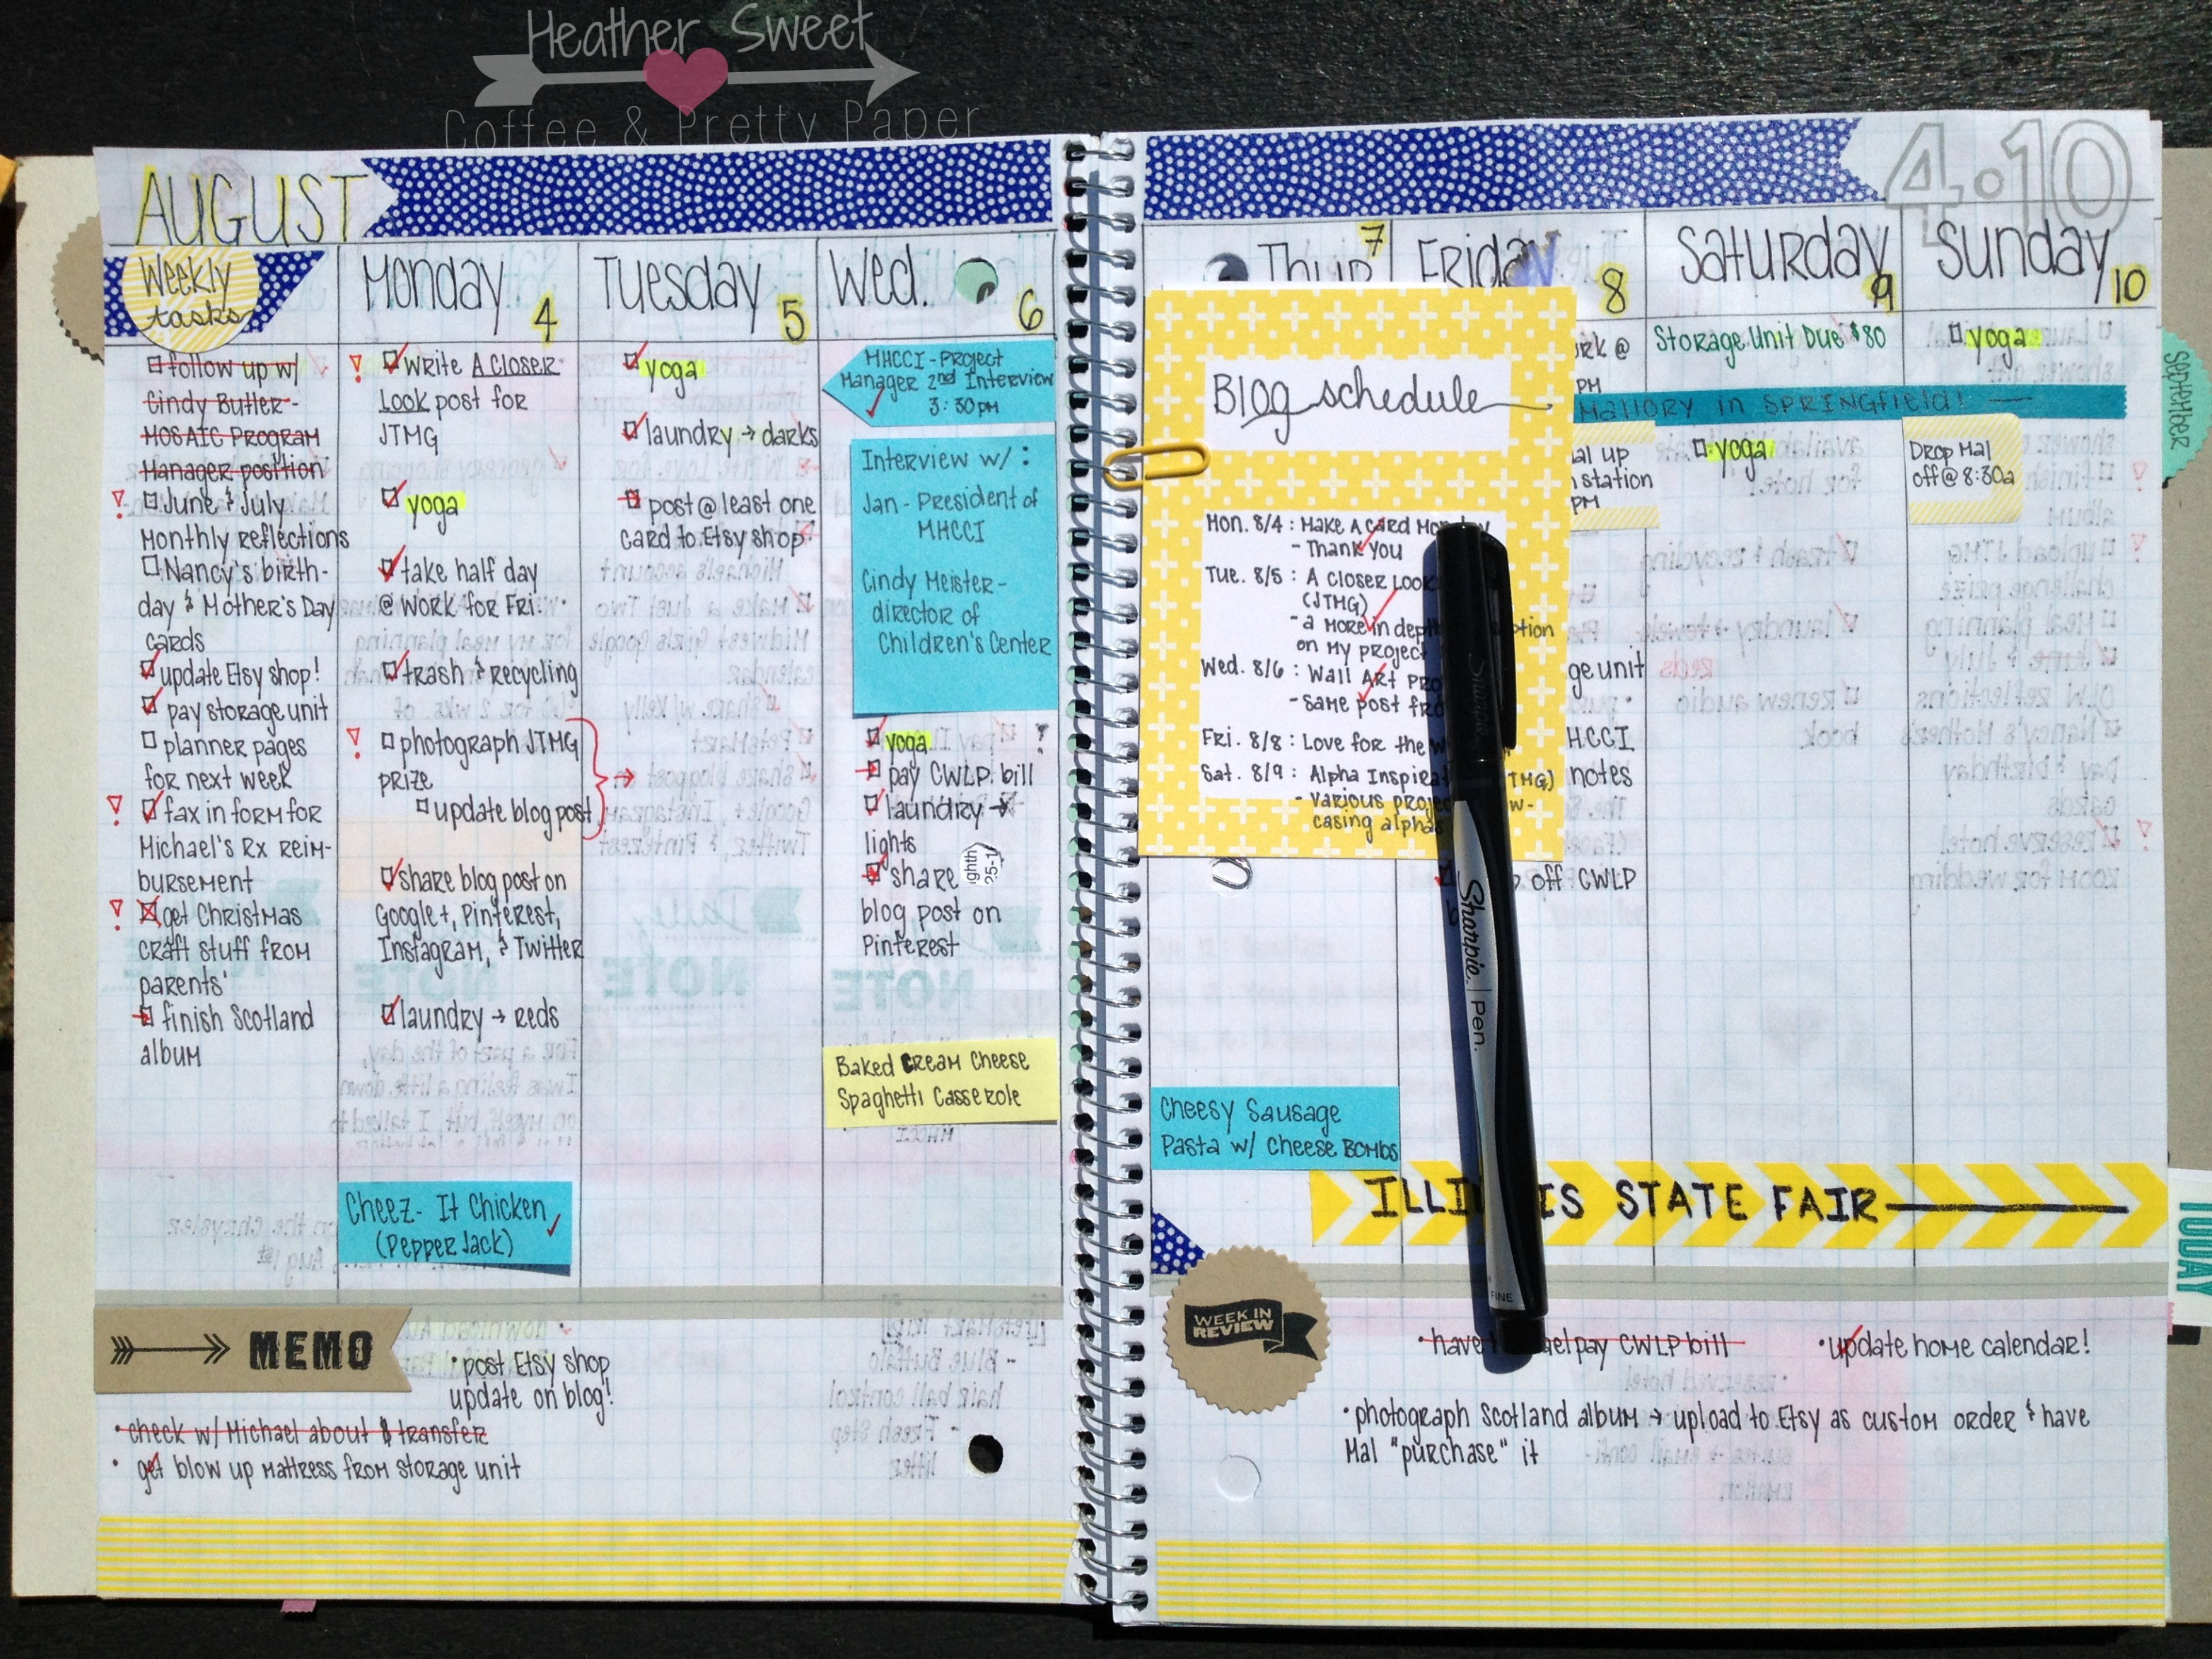 DIY Planner From Notebook  Coffee and Pretty Paper My DIY Planner